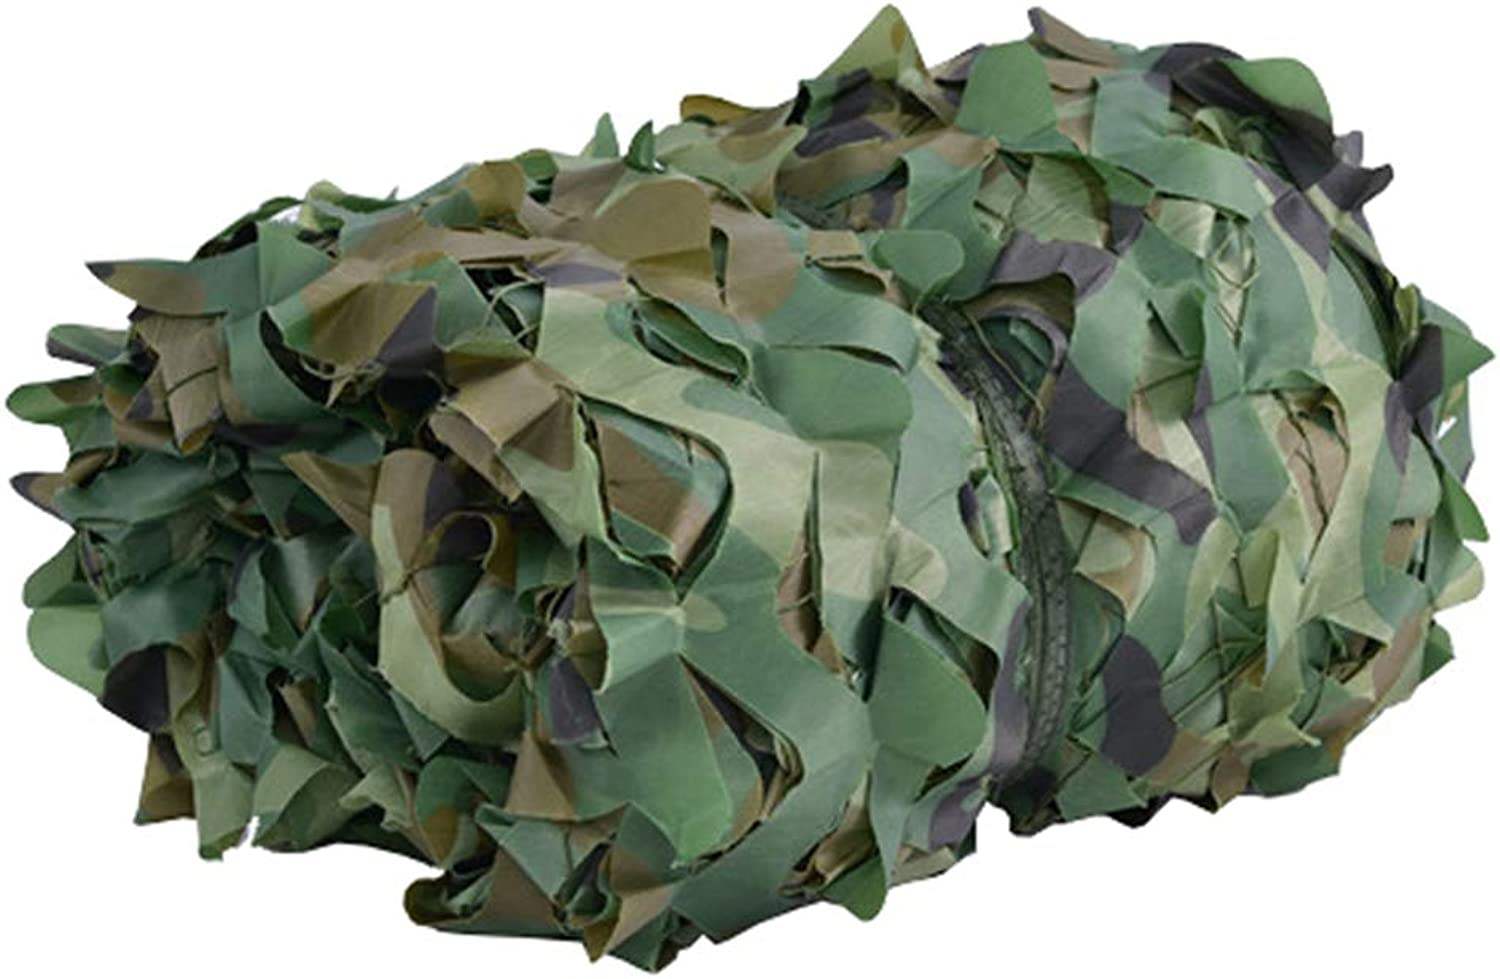 Camo Netting Sunshading Net Lightweight Durable Reinforced Oxford Polyester Camping Military Hunting Shooting Blind Hide Jungle Camouflage Net